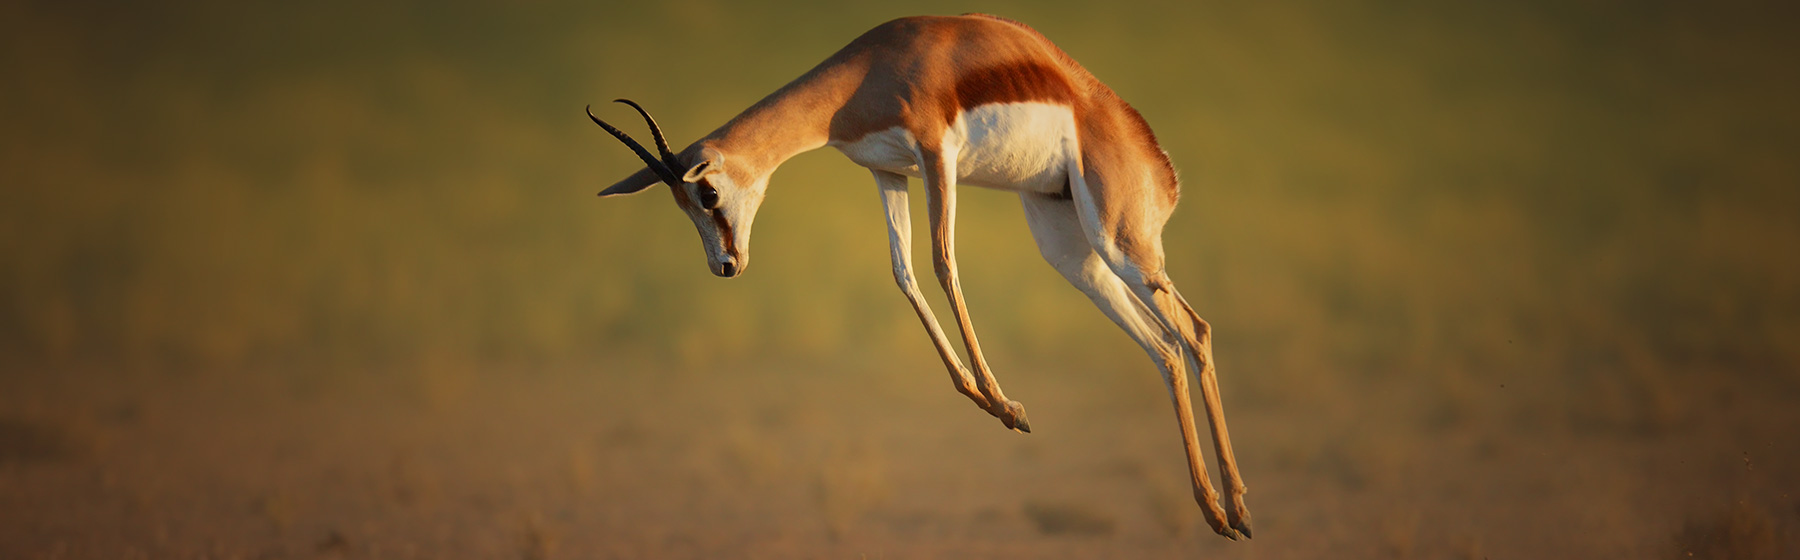 springbok_wildlifeinsure_slide2